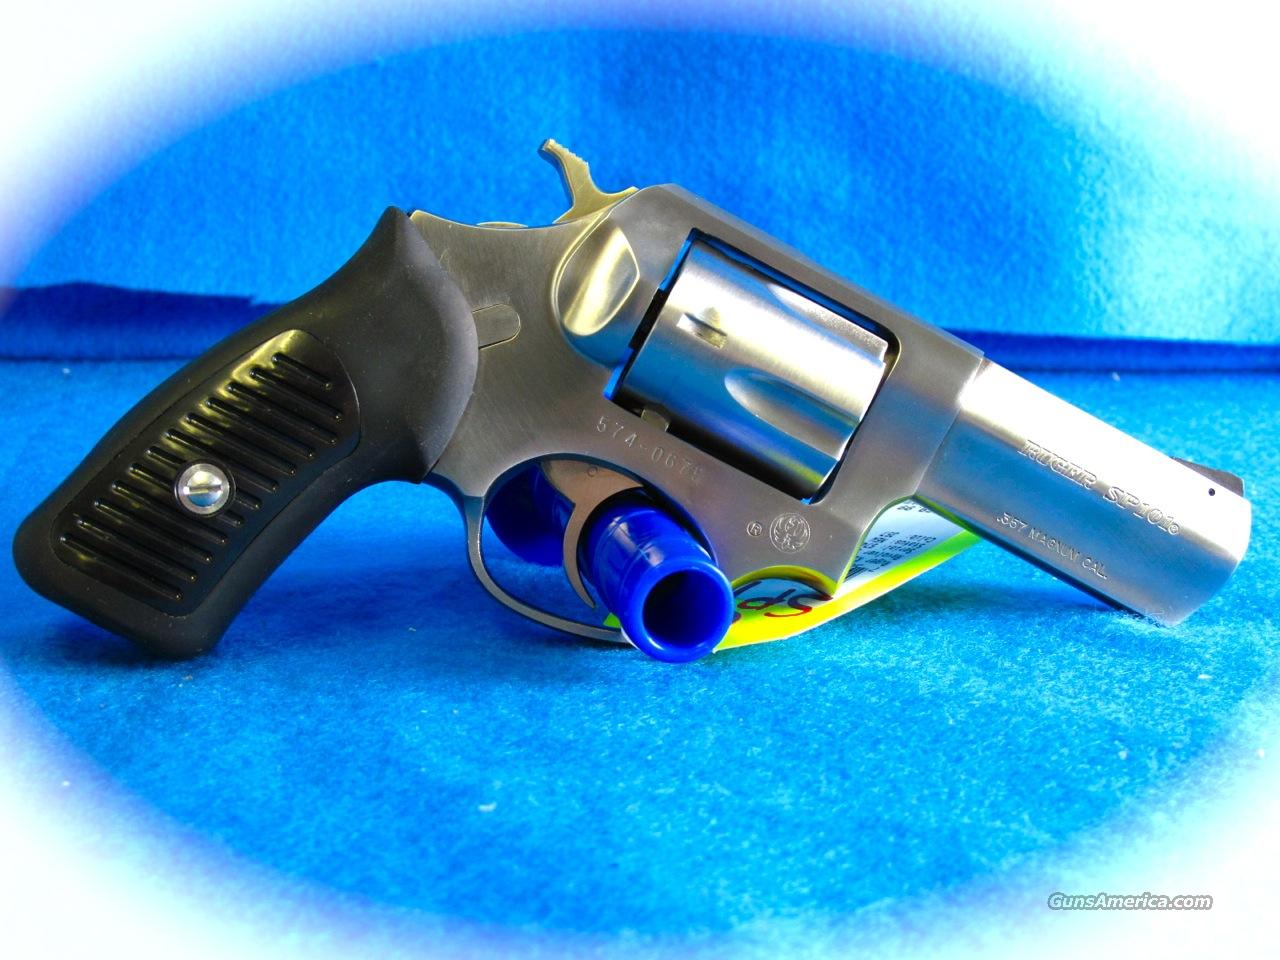 Ruger SP101 357 Magnum SS Revolver**NEW**  Guns > Pistols > Ruger Double Action Revolver > SP101 Type